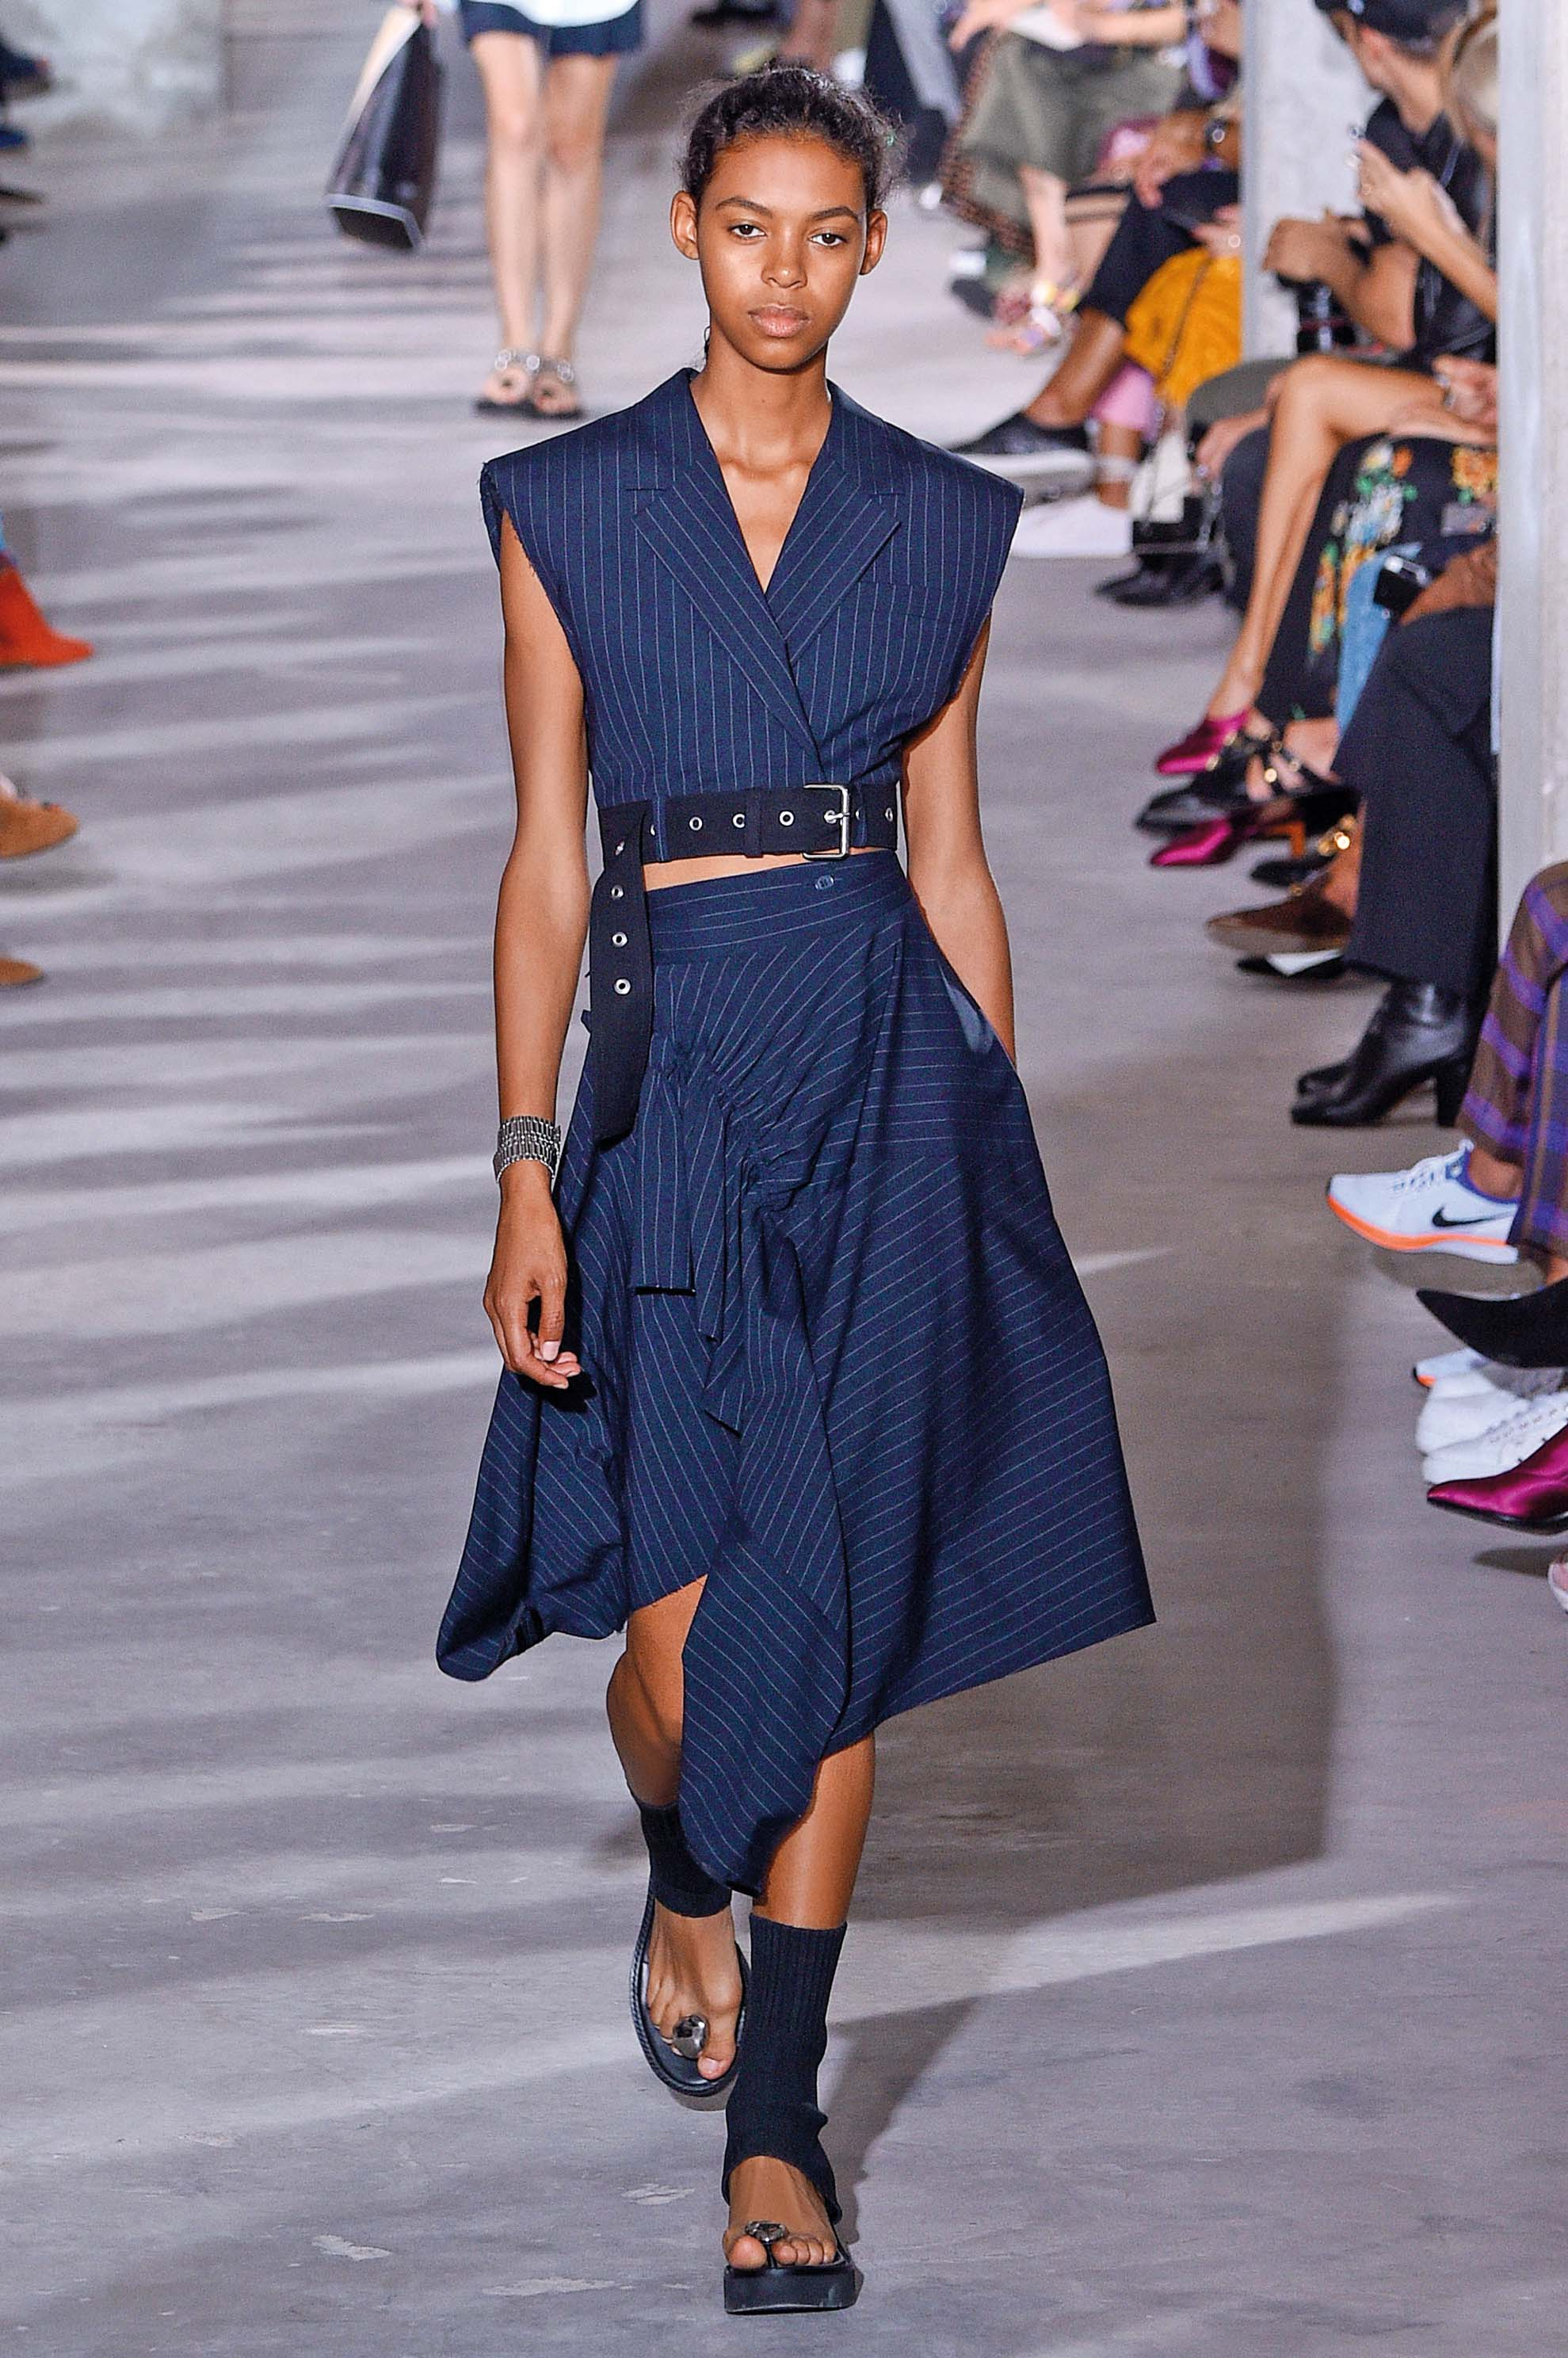 NEW YORK, NY - SEPTEMBER 11:  Alyssa Traore walks the runway at the 3.1 Phillip Lim Ready to Wear Spring/Summer 2018 fashion show during New York Fashion Week on September 11, 2017 in New York City.  (Photo by Peter White/Getty Images)